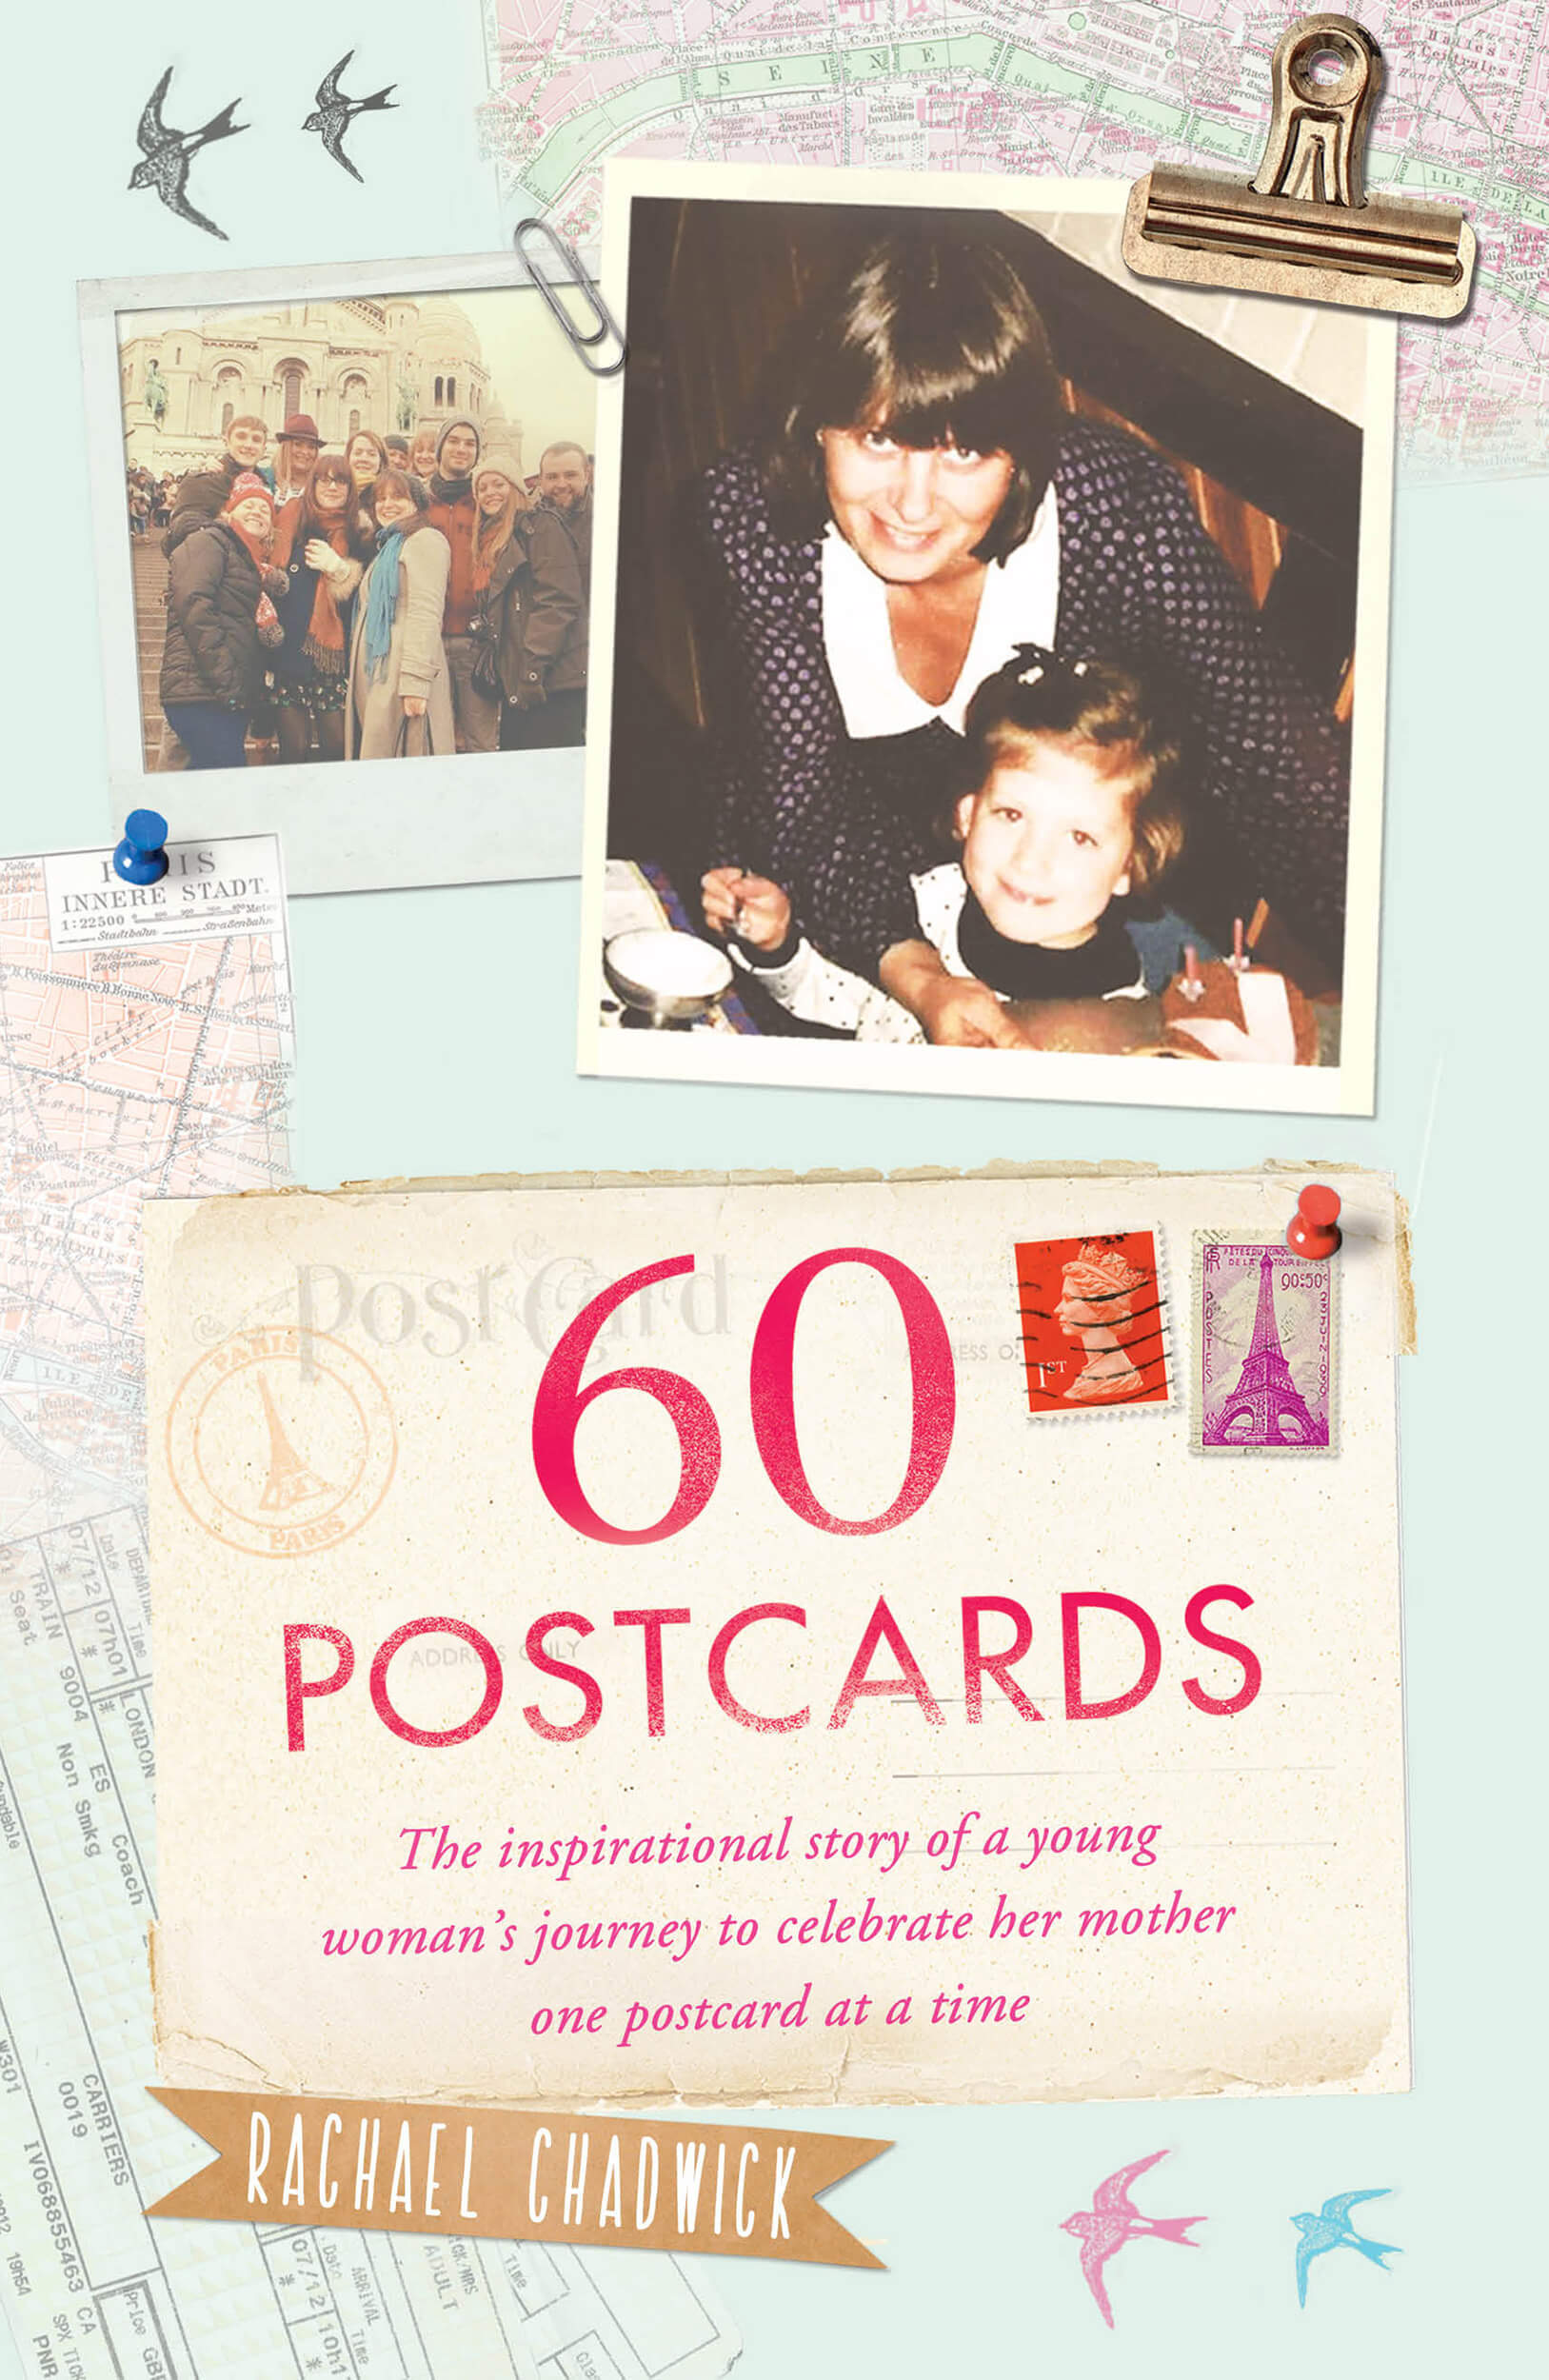 What Happens after Death, 60 Postcards, book, blog, Paris, tribute, Rachael Chadwick